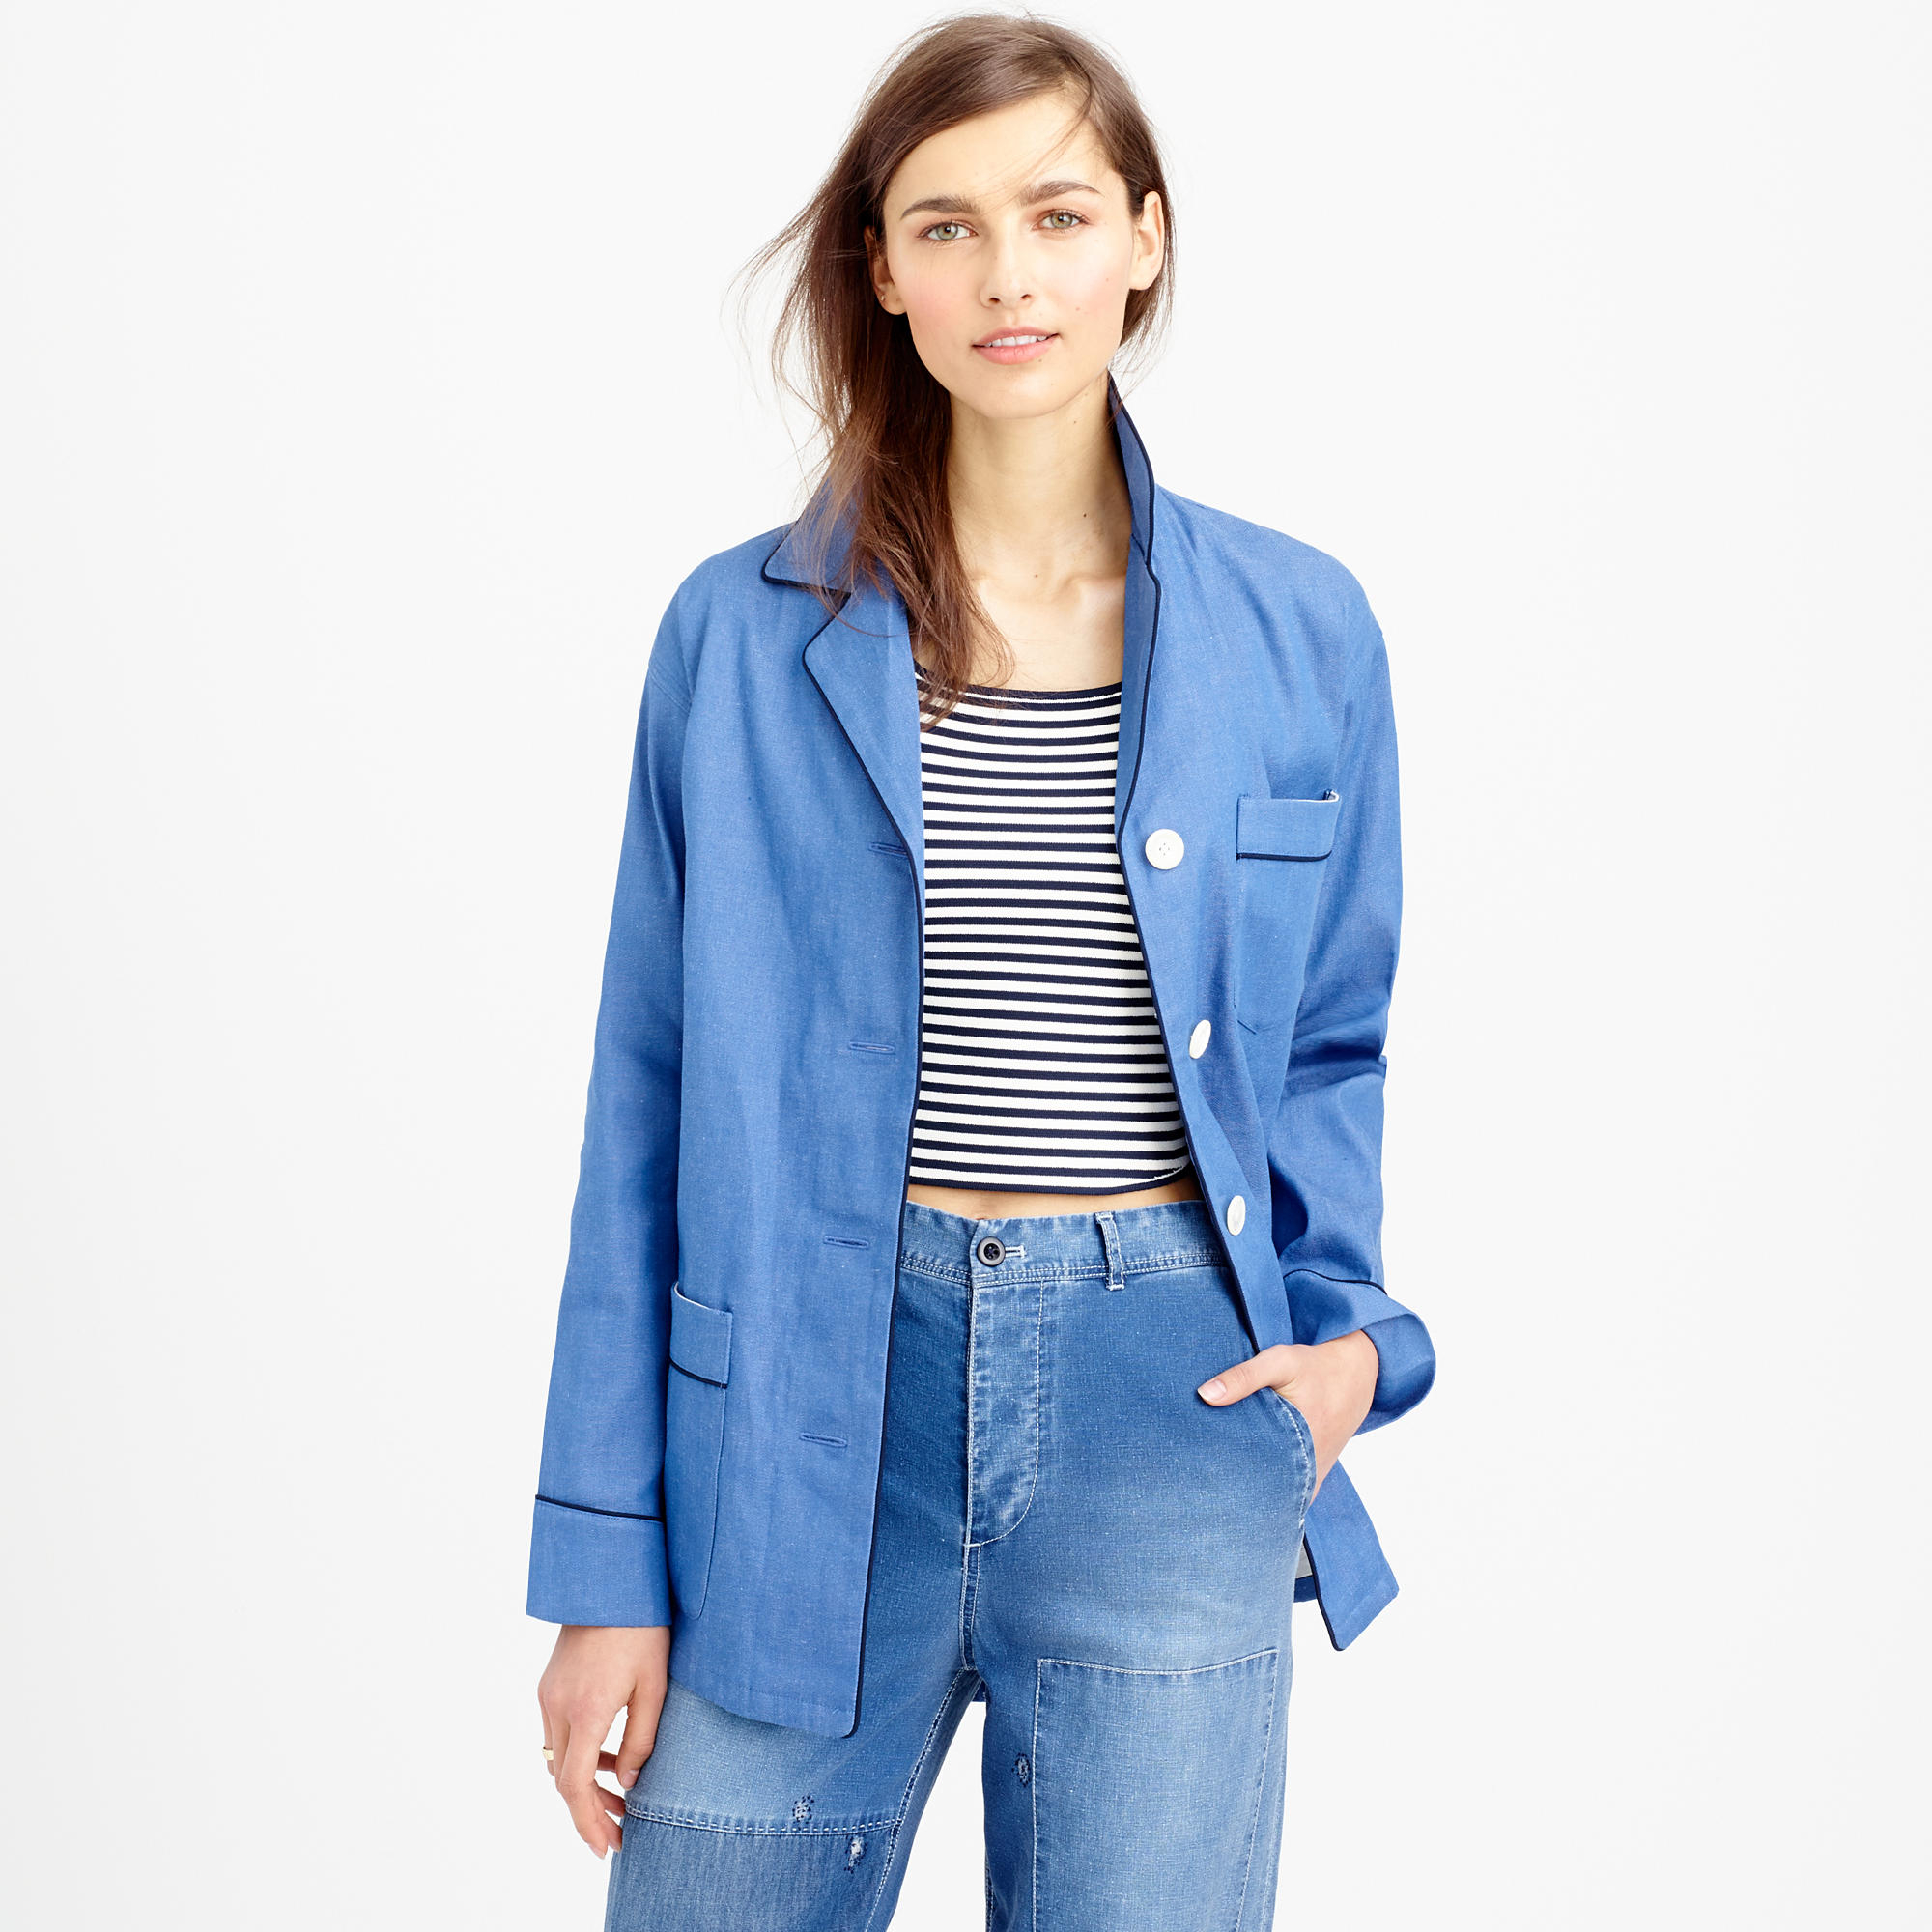 Jcrew Collection Denim Pajama Shirt-Jacket In Blue - Lyst-6027